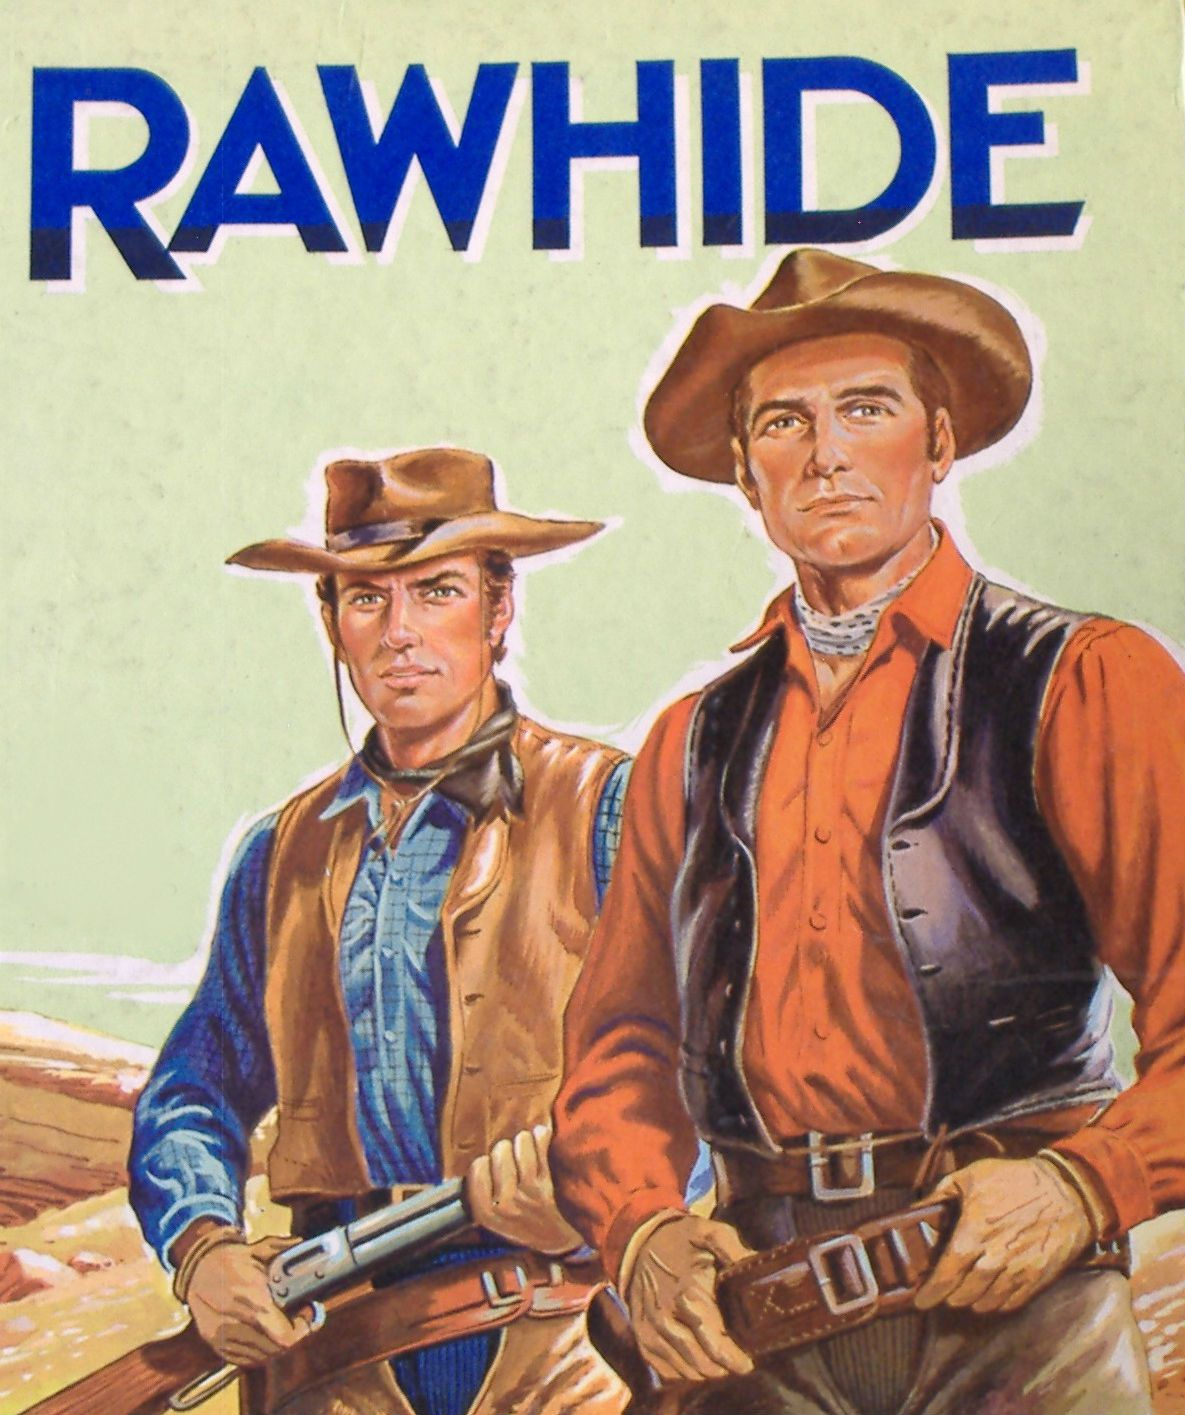 Rawhide-annual-cover-cropped-and-ready